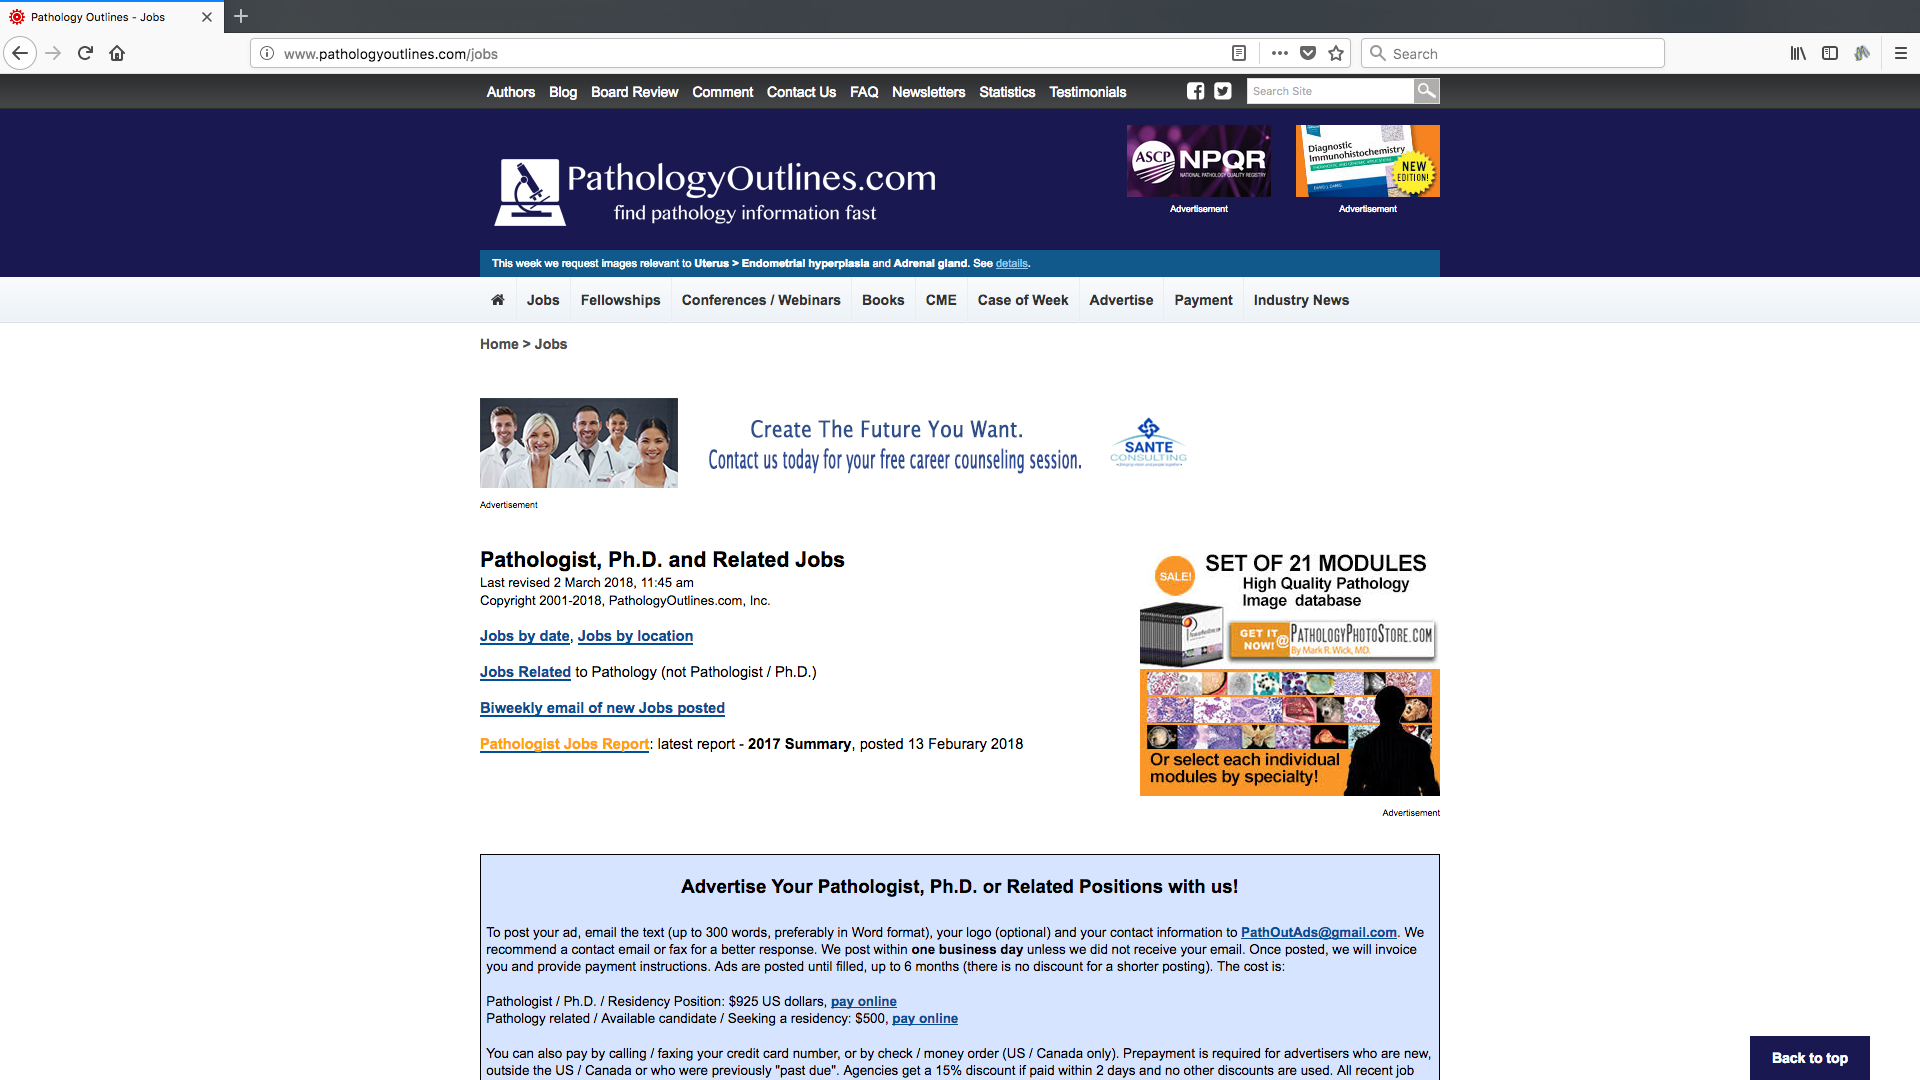 Pathology Outlines - Jobs page banner advertising at